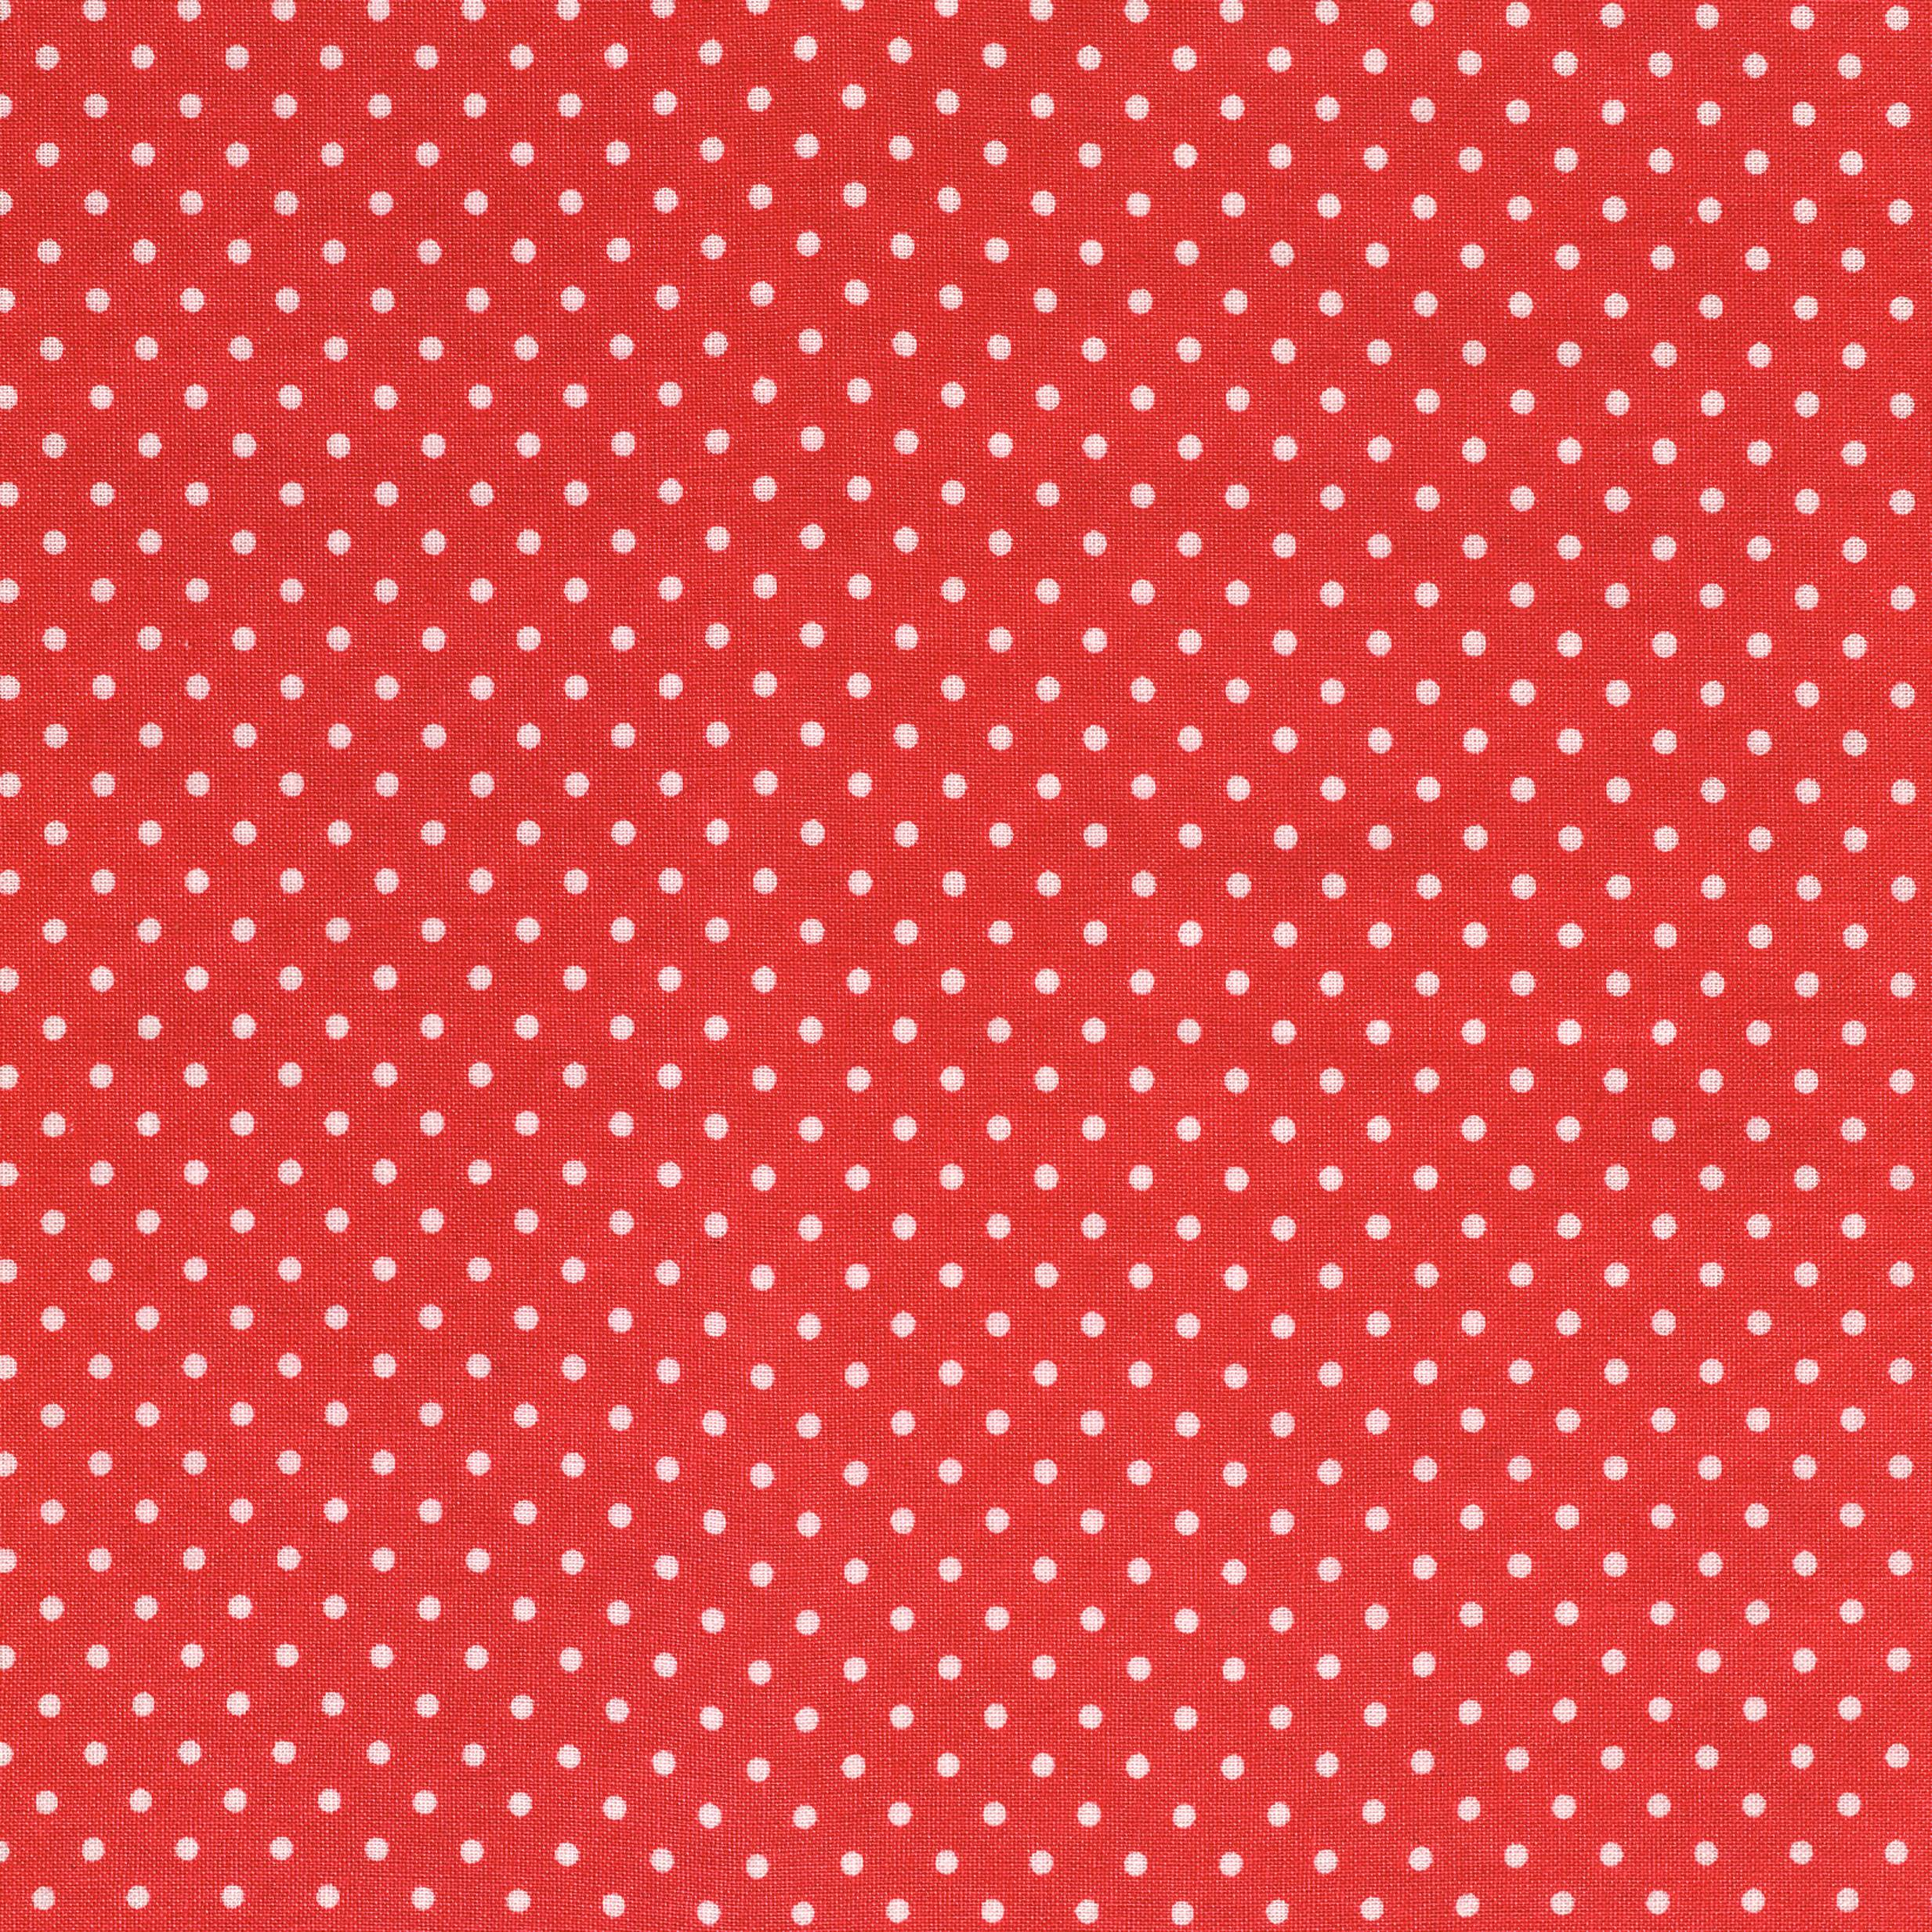 SHASON TEXTILE (3 Yards cut) 100% COTTON PRINT QUILTING FABRIC, CORAL / WHITE SMALL DOTS.